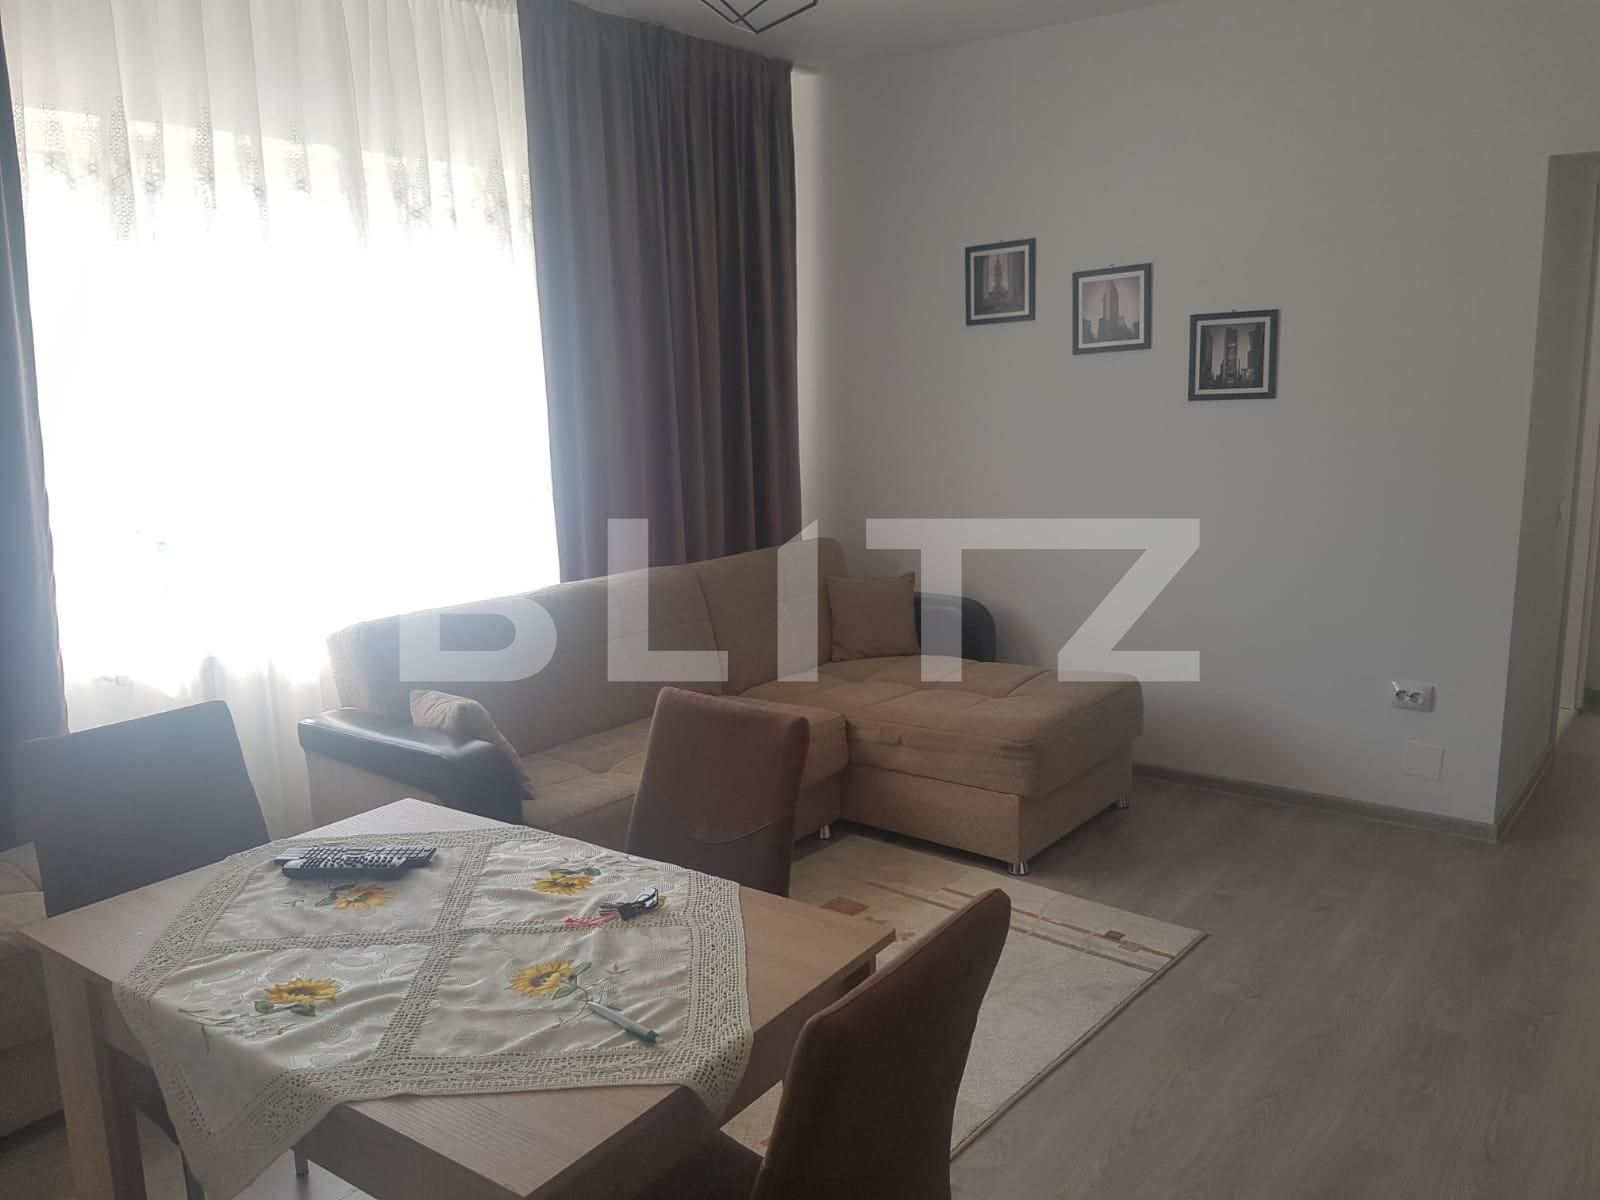 Apartament 2 camere decomandate, pet friendly, 47 mp, zona Teilor